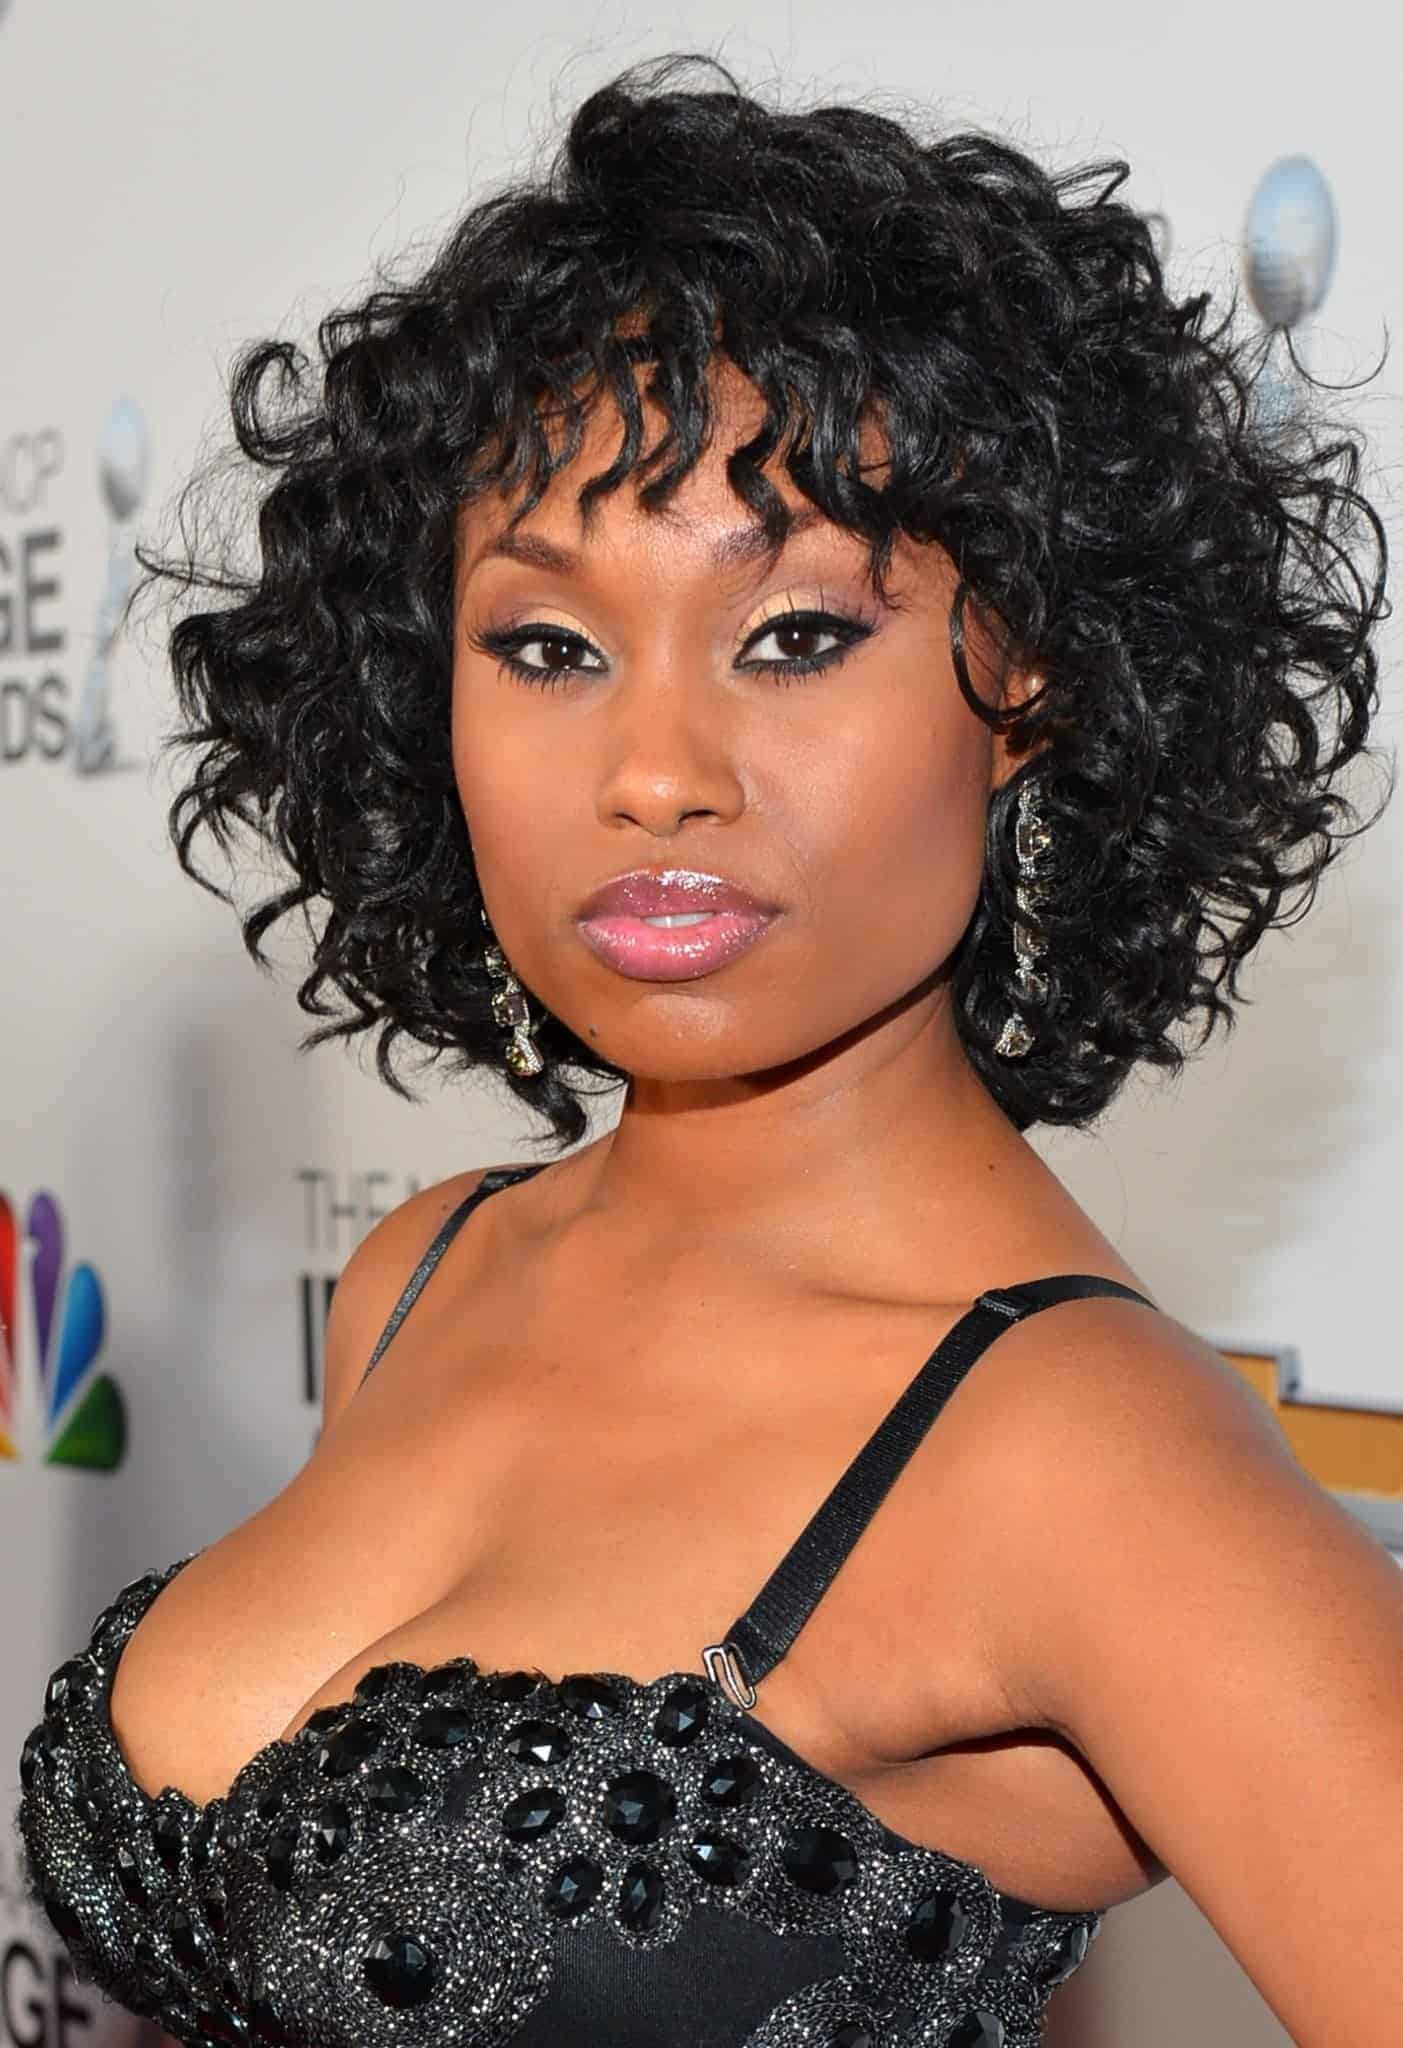 Short natural hairstyles for black women 2015, Women